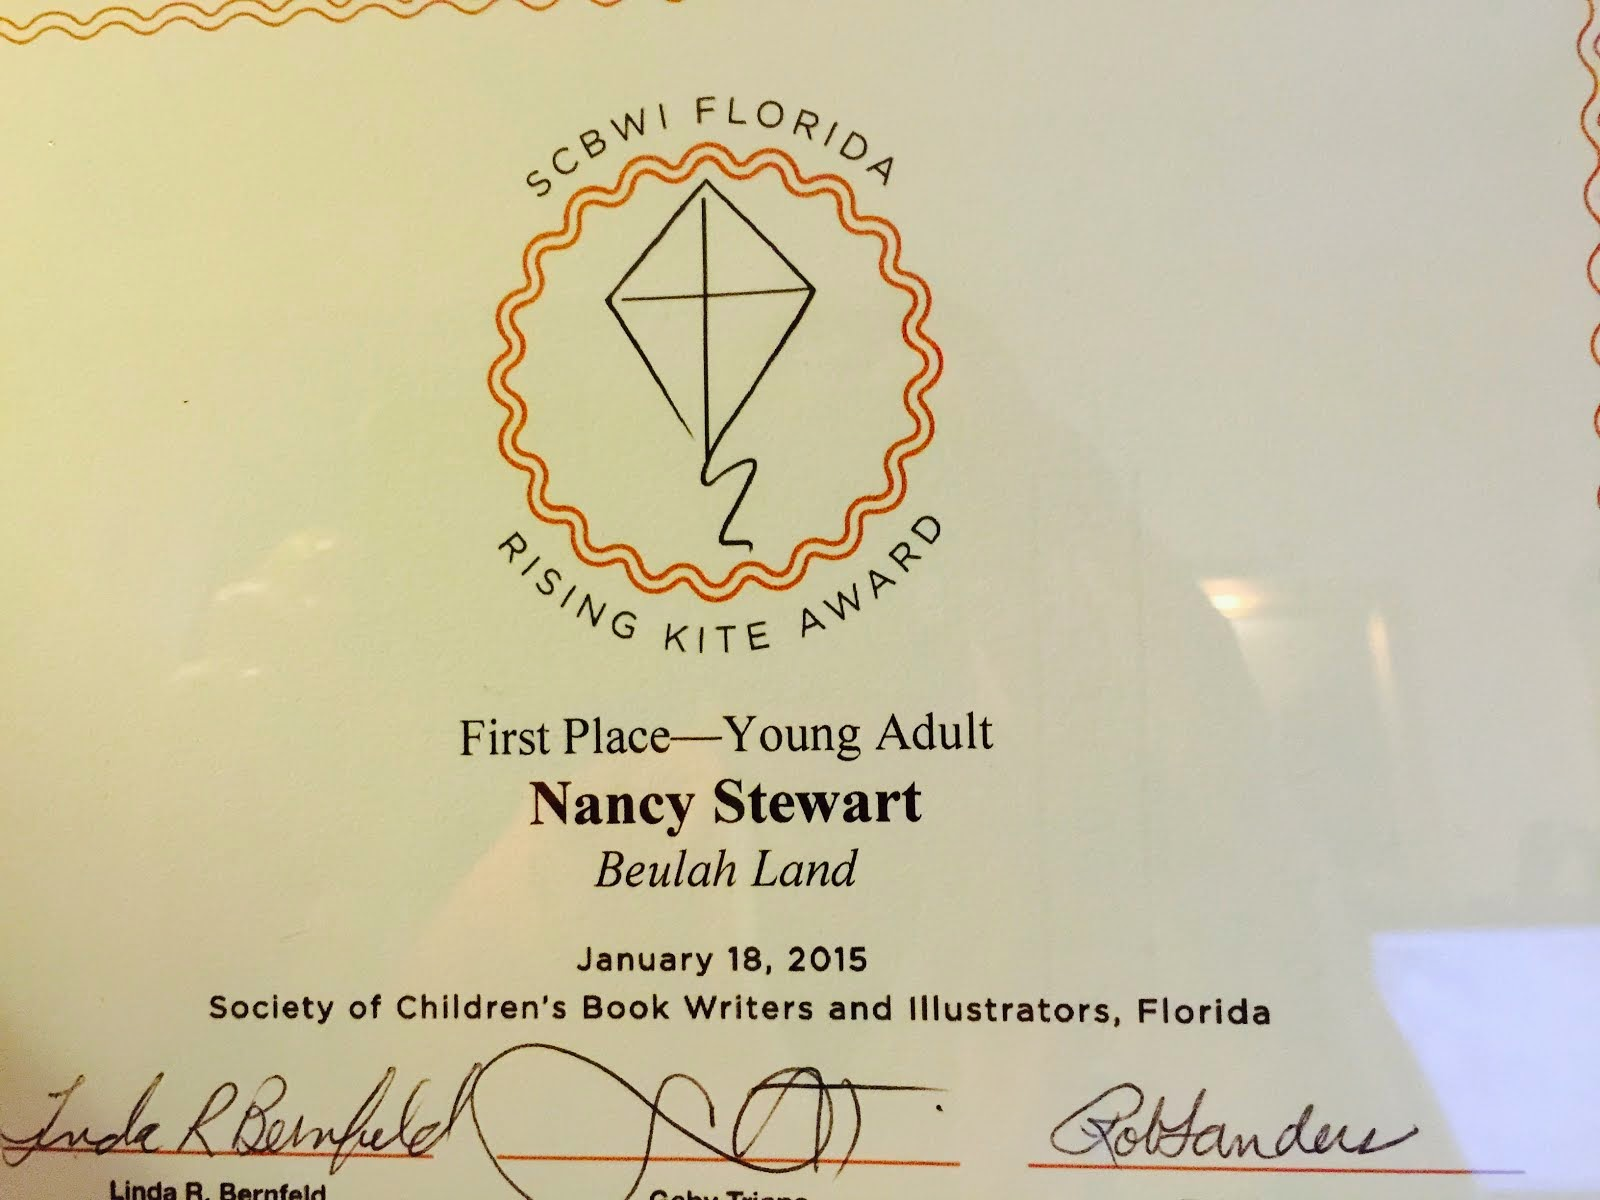 First Place Rising Kite Award-Florida SCBWI